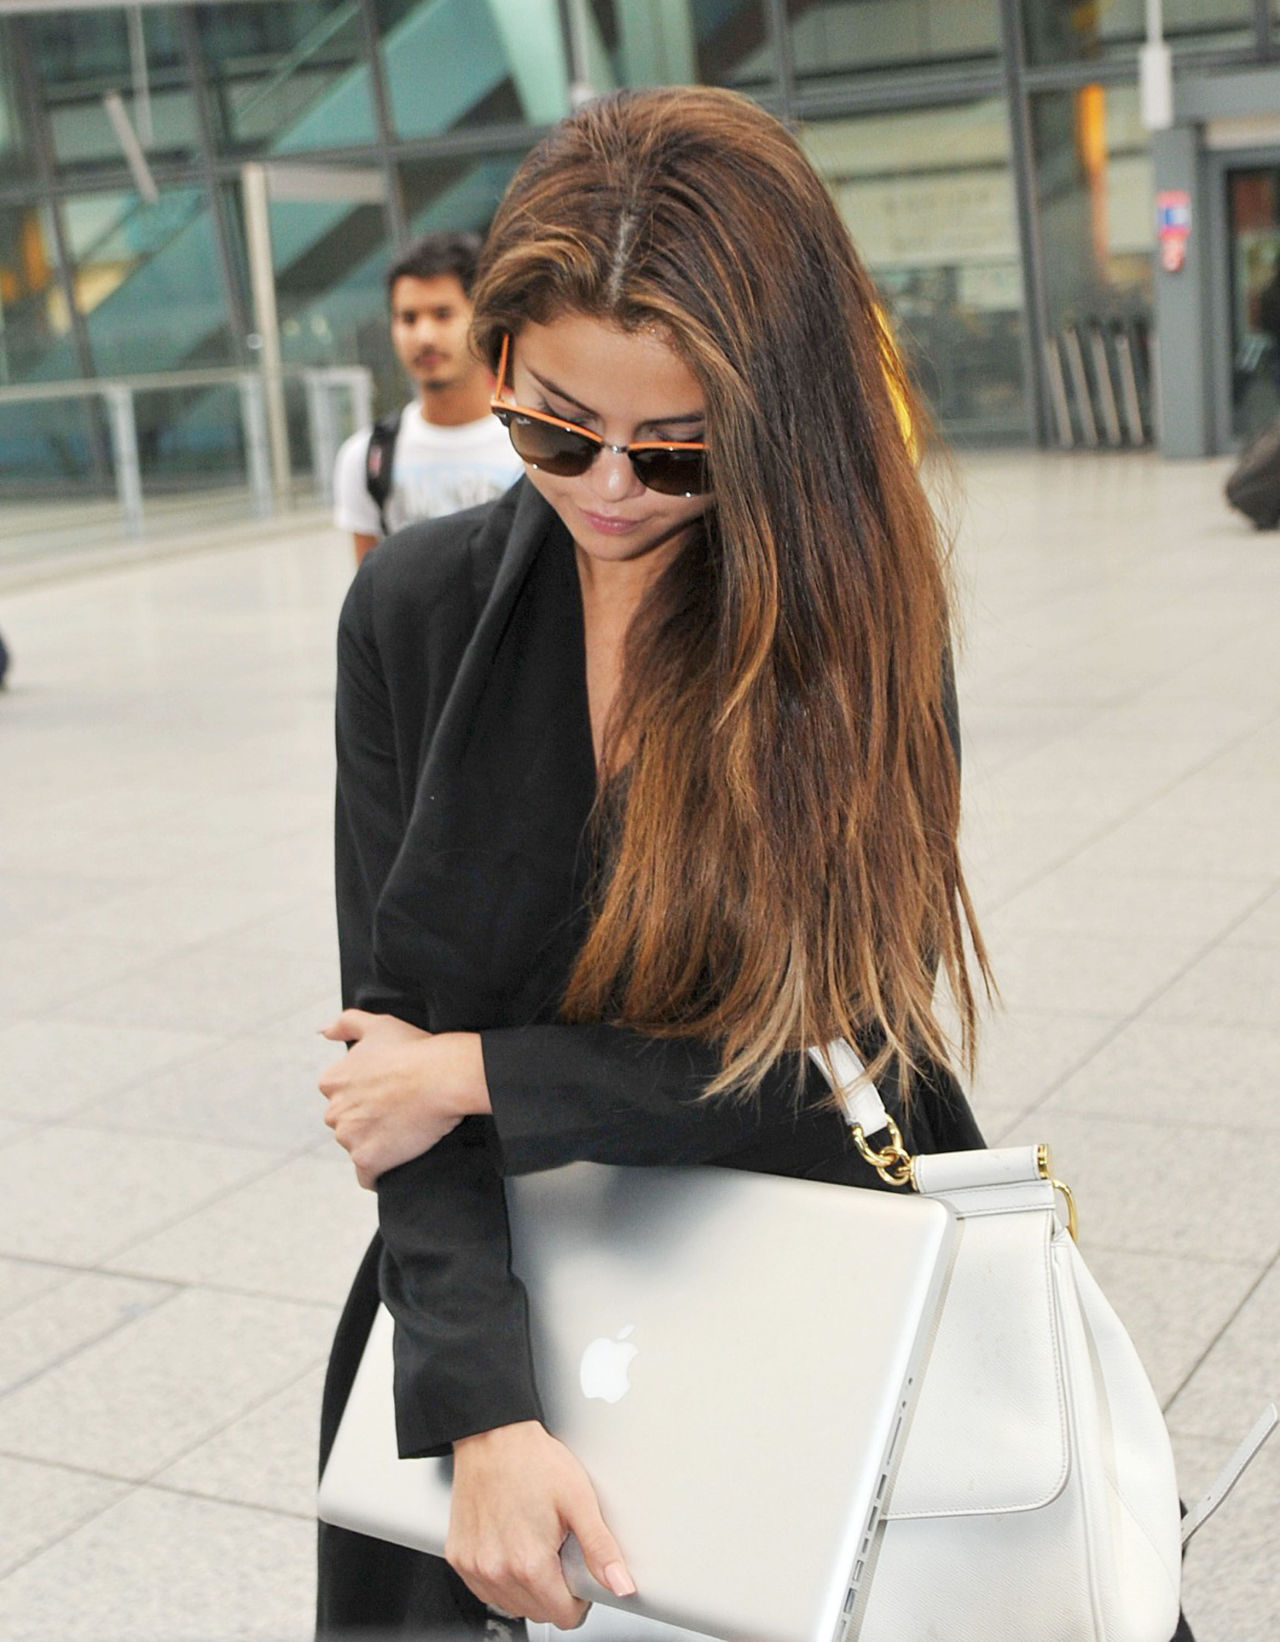 Selena Gomez in London, May 21st